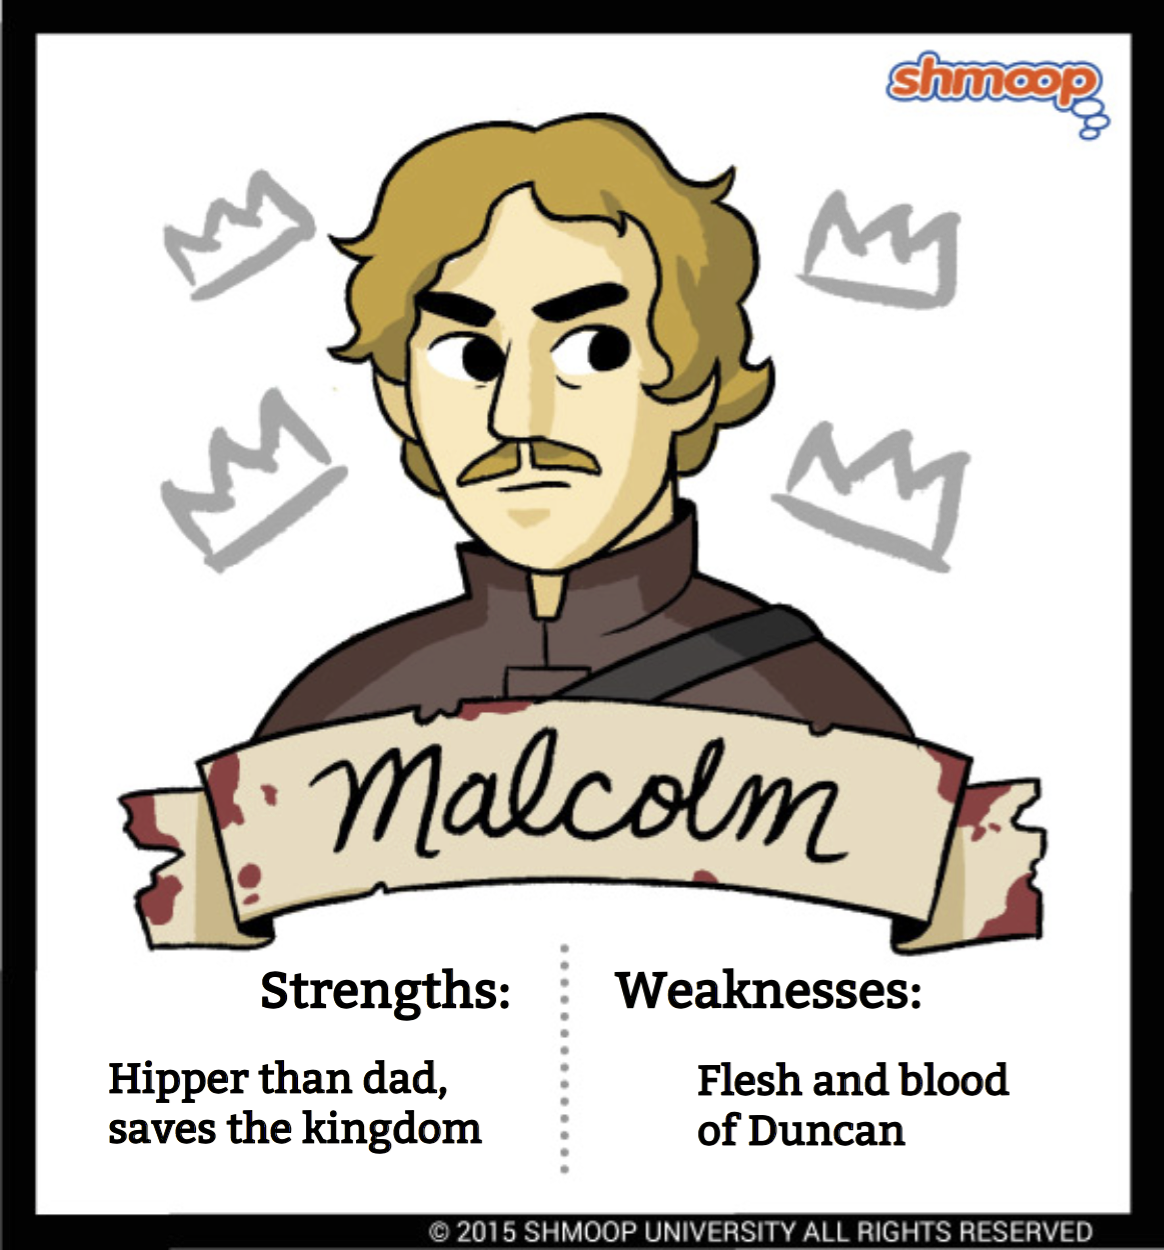 characterization of macbeth in william shakespeares tragedy macbeth Far from the notorious character in william shakespeare's play, the real macbeth was a king of medieval scotland find out his true character at biographycom.